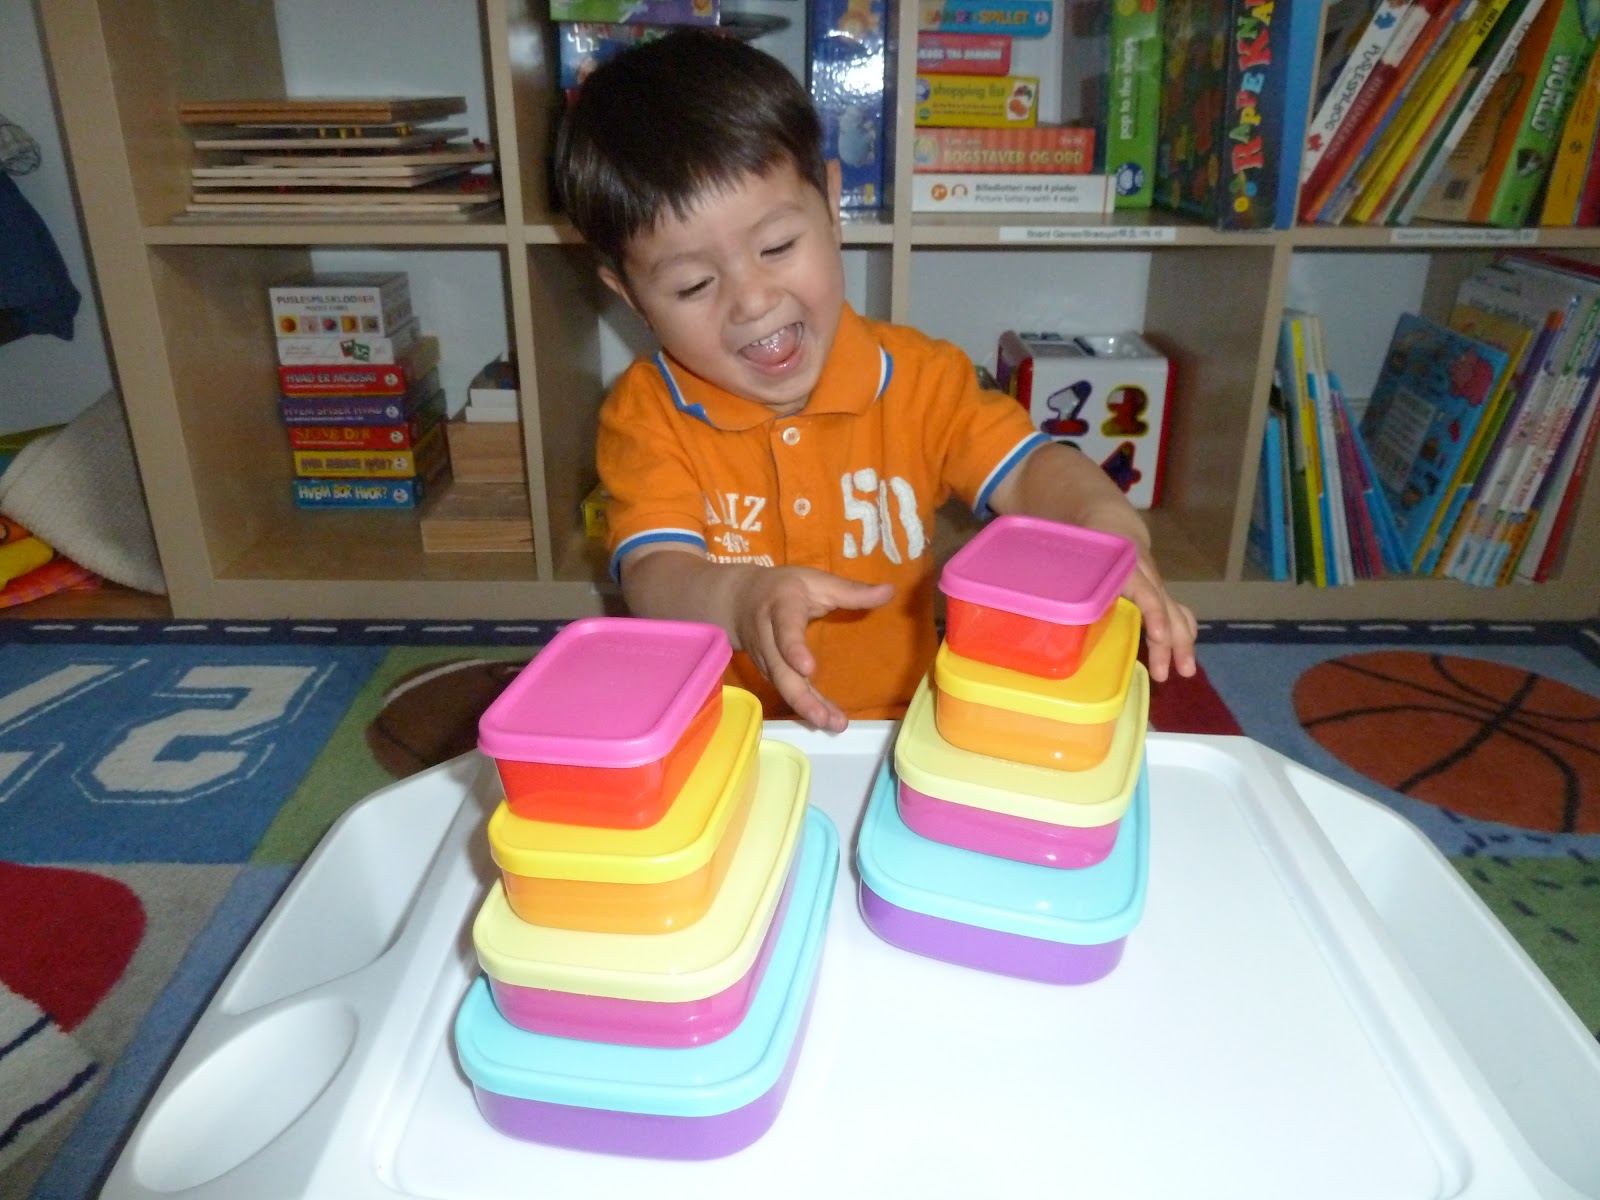 Family Fecs Montessori Activity Opening Closing Containers With Lids